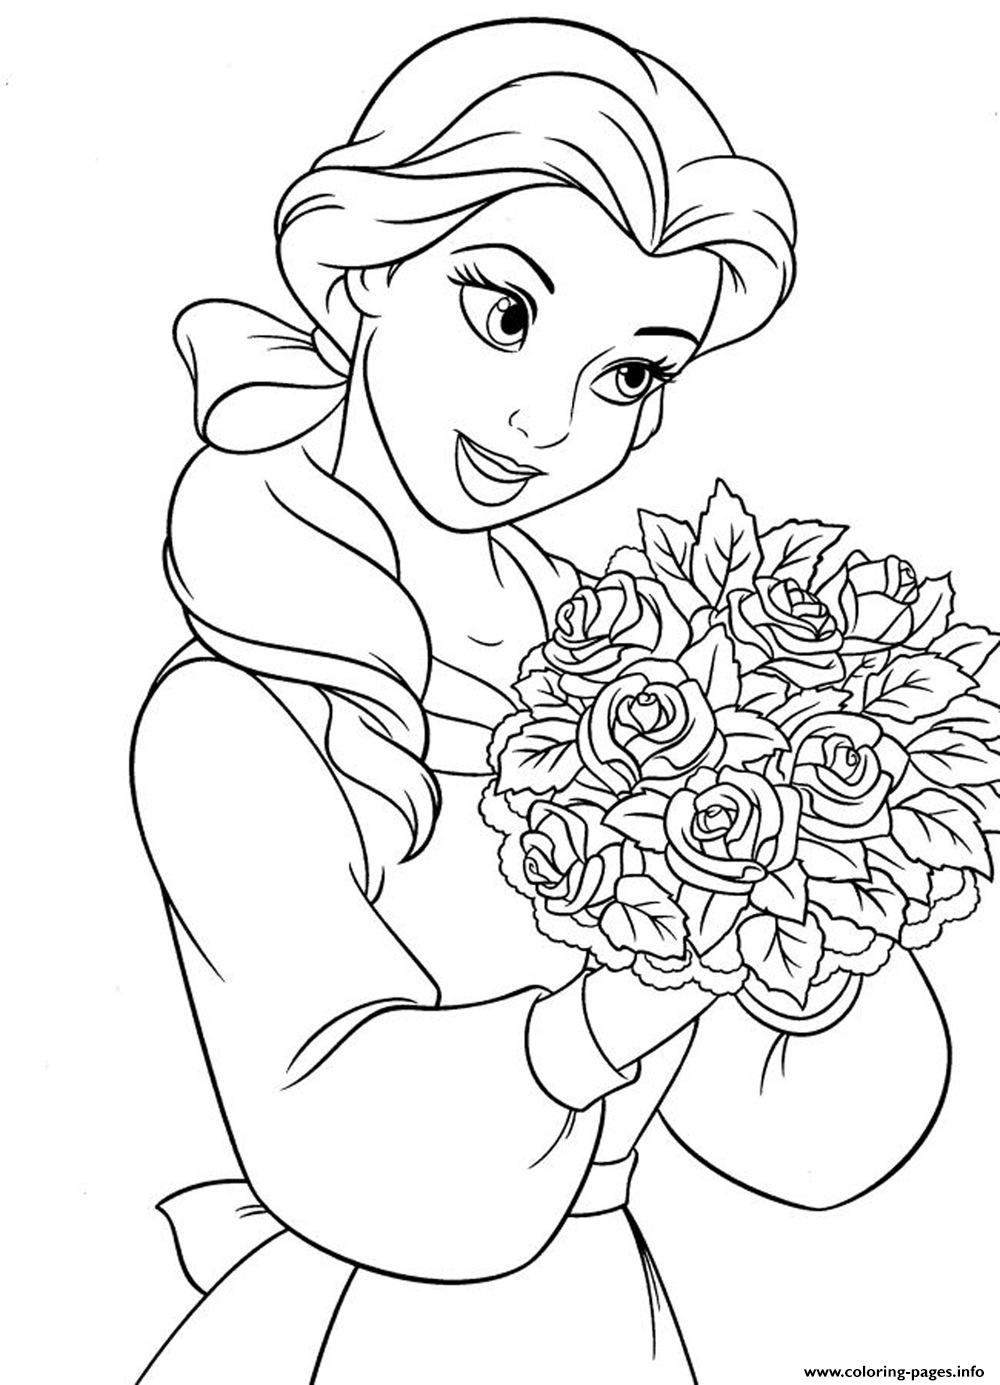 coloring cute girl printable coloring pages for girls ideas whitesbelfast coloring girl cute